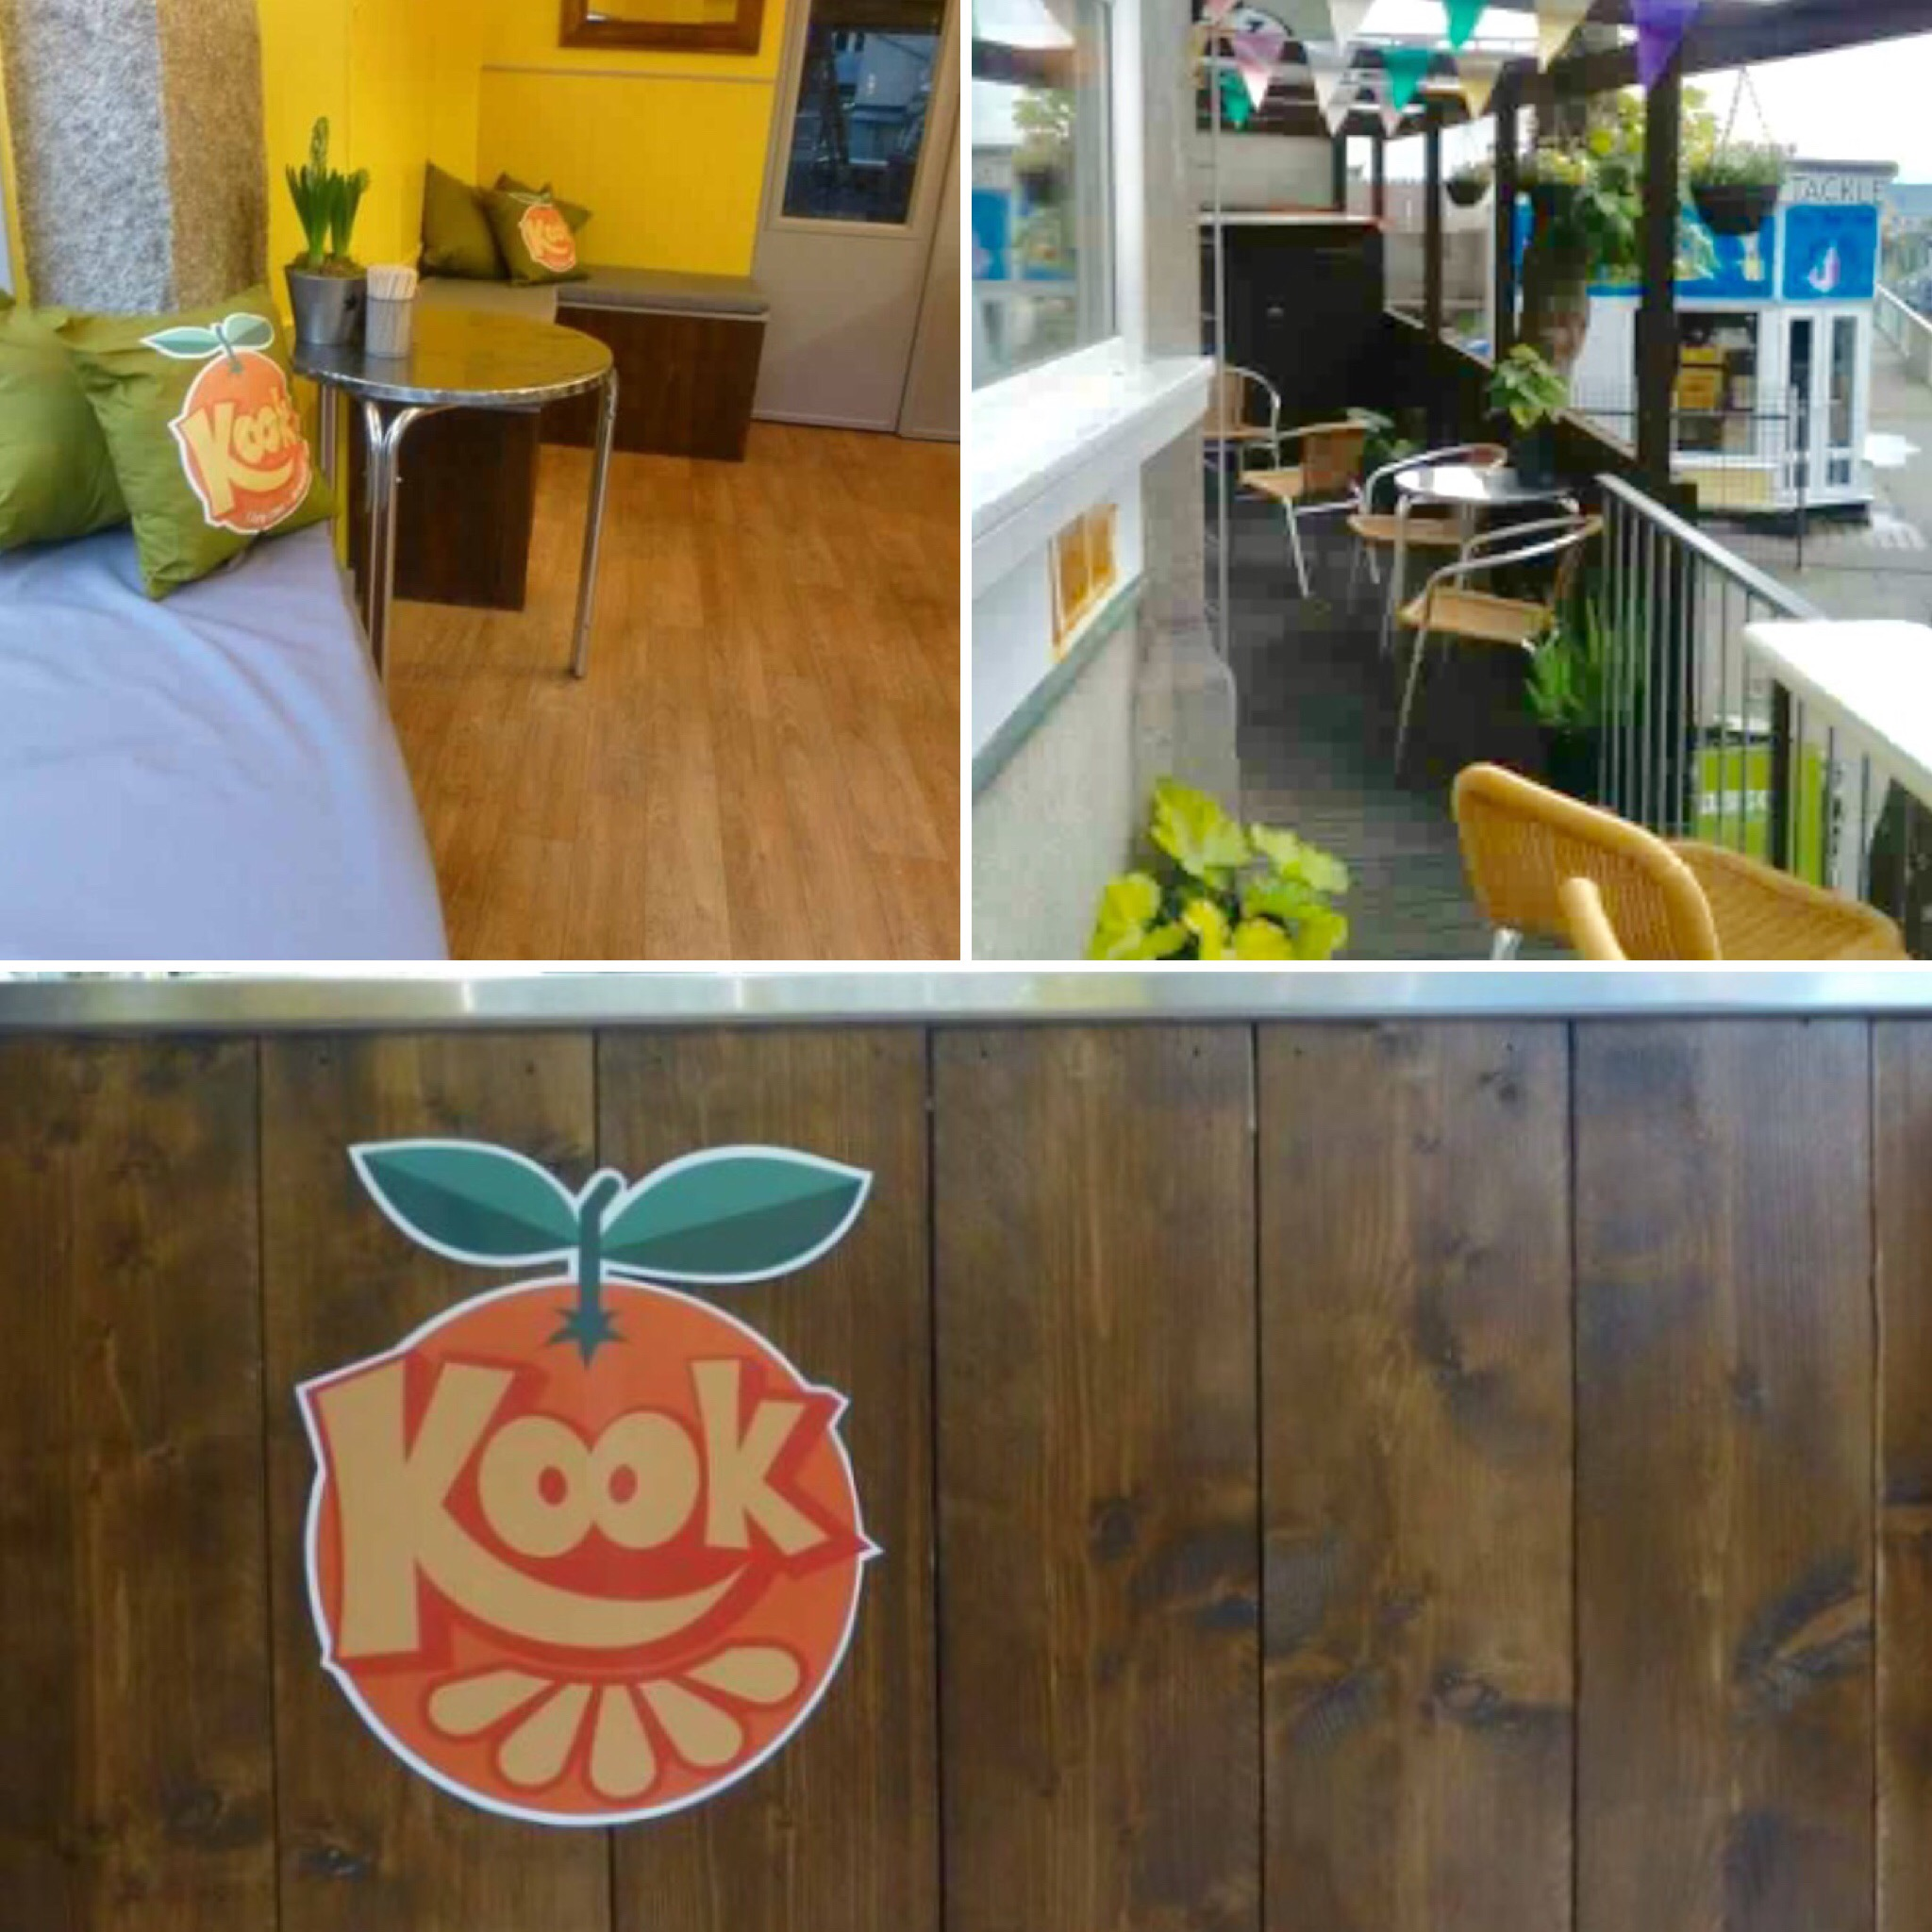 Kook Smoothie Bar, Newquay